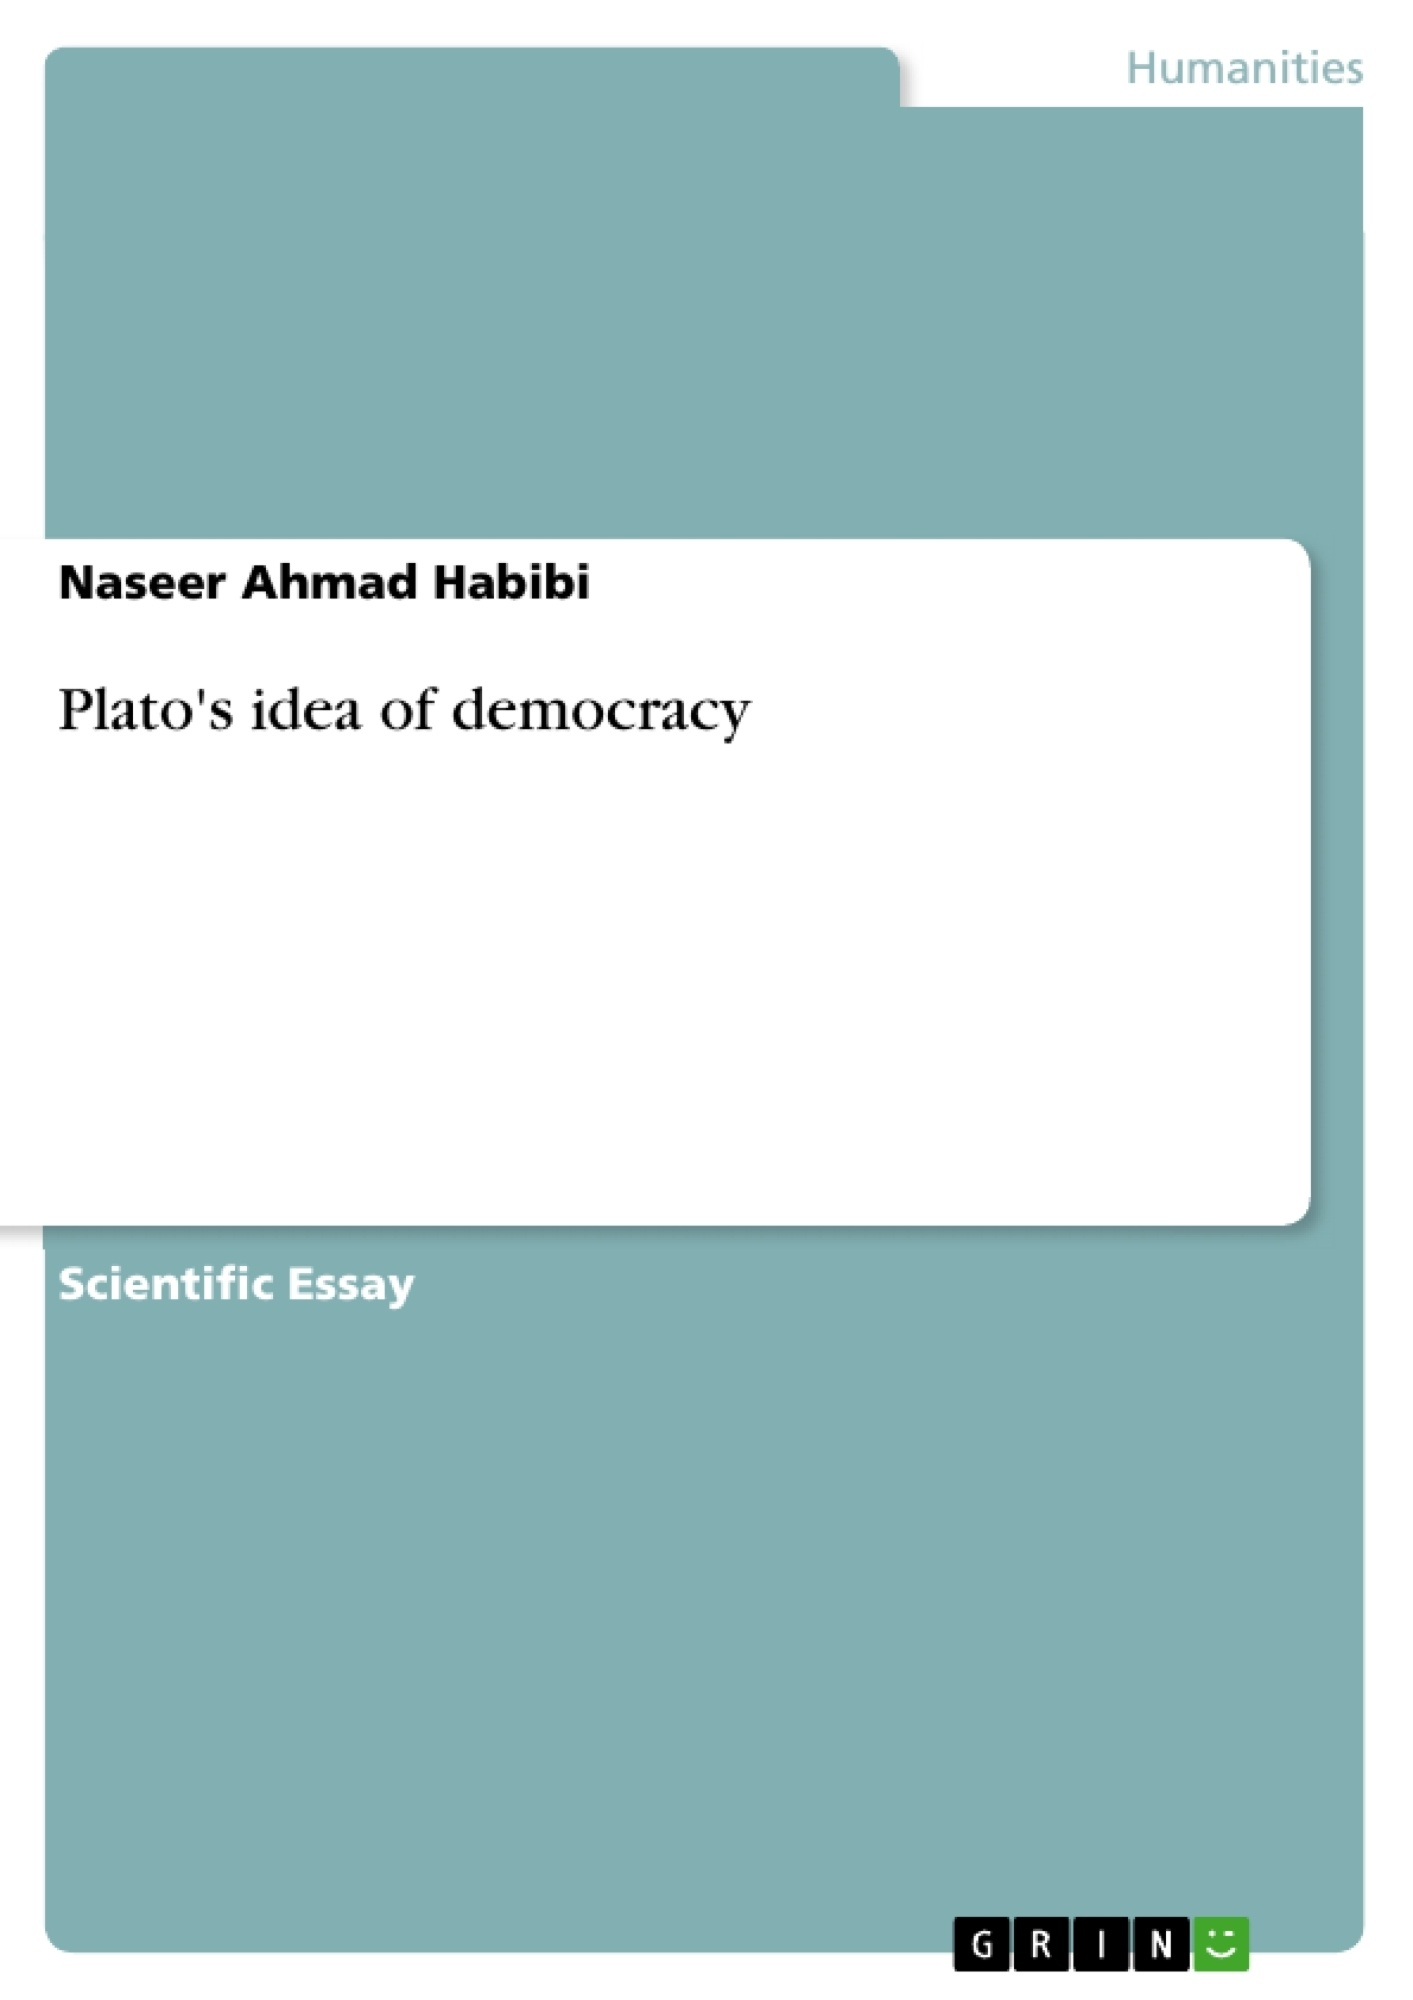 Title: Plato's idea of democracy